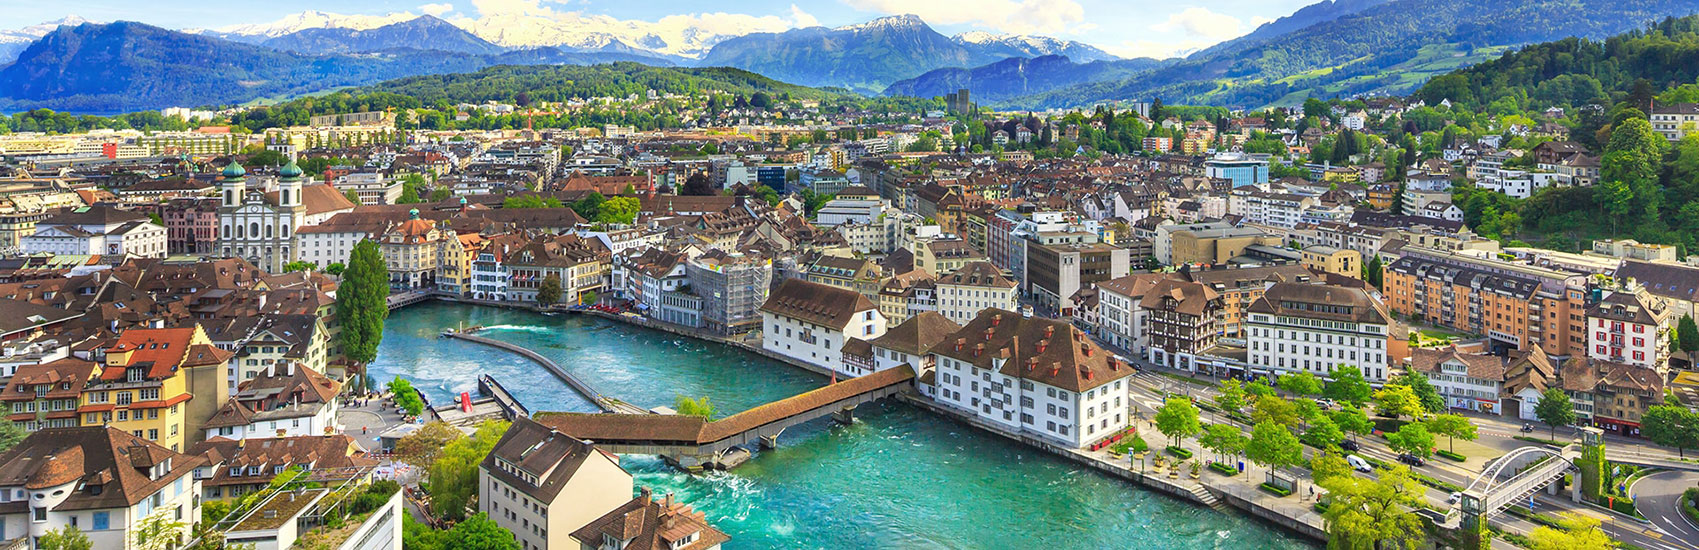 Special Savings on European River Cruises with AmaWaterways 3